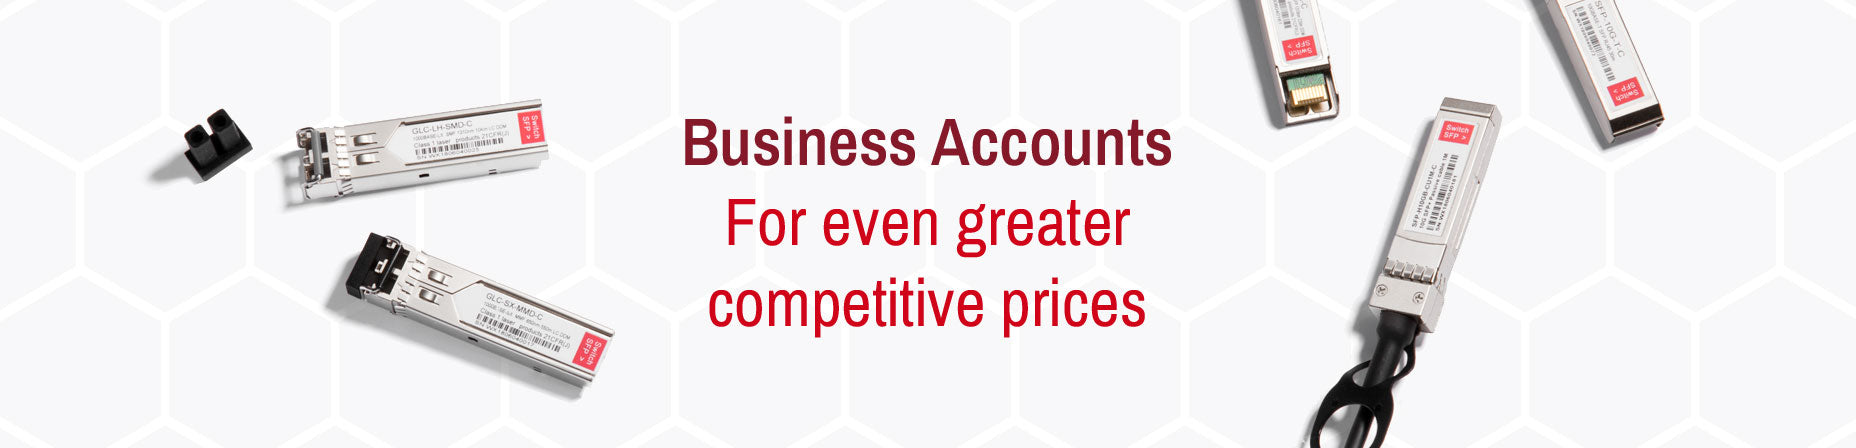 Switch SFP Ltd Trade Accounts competitive prices